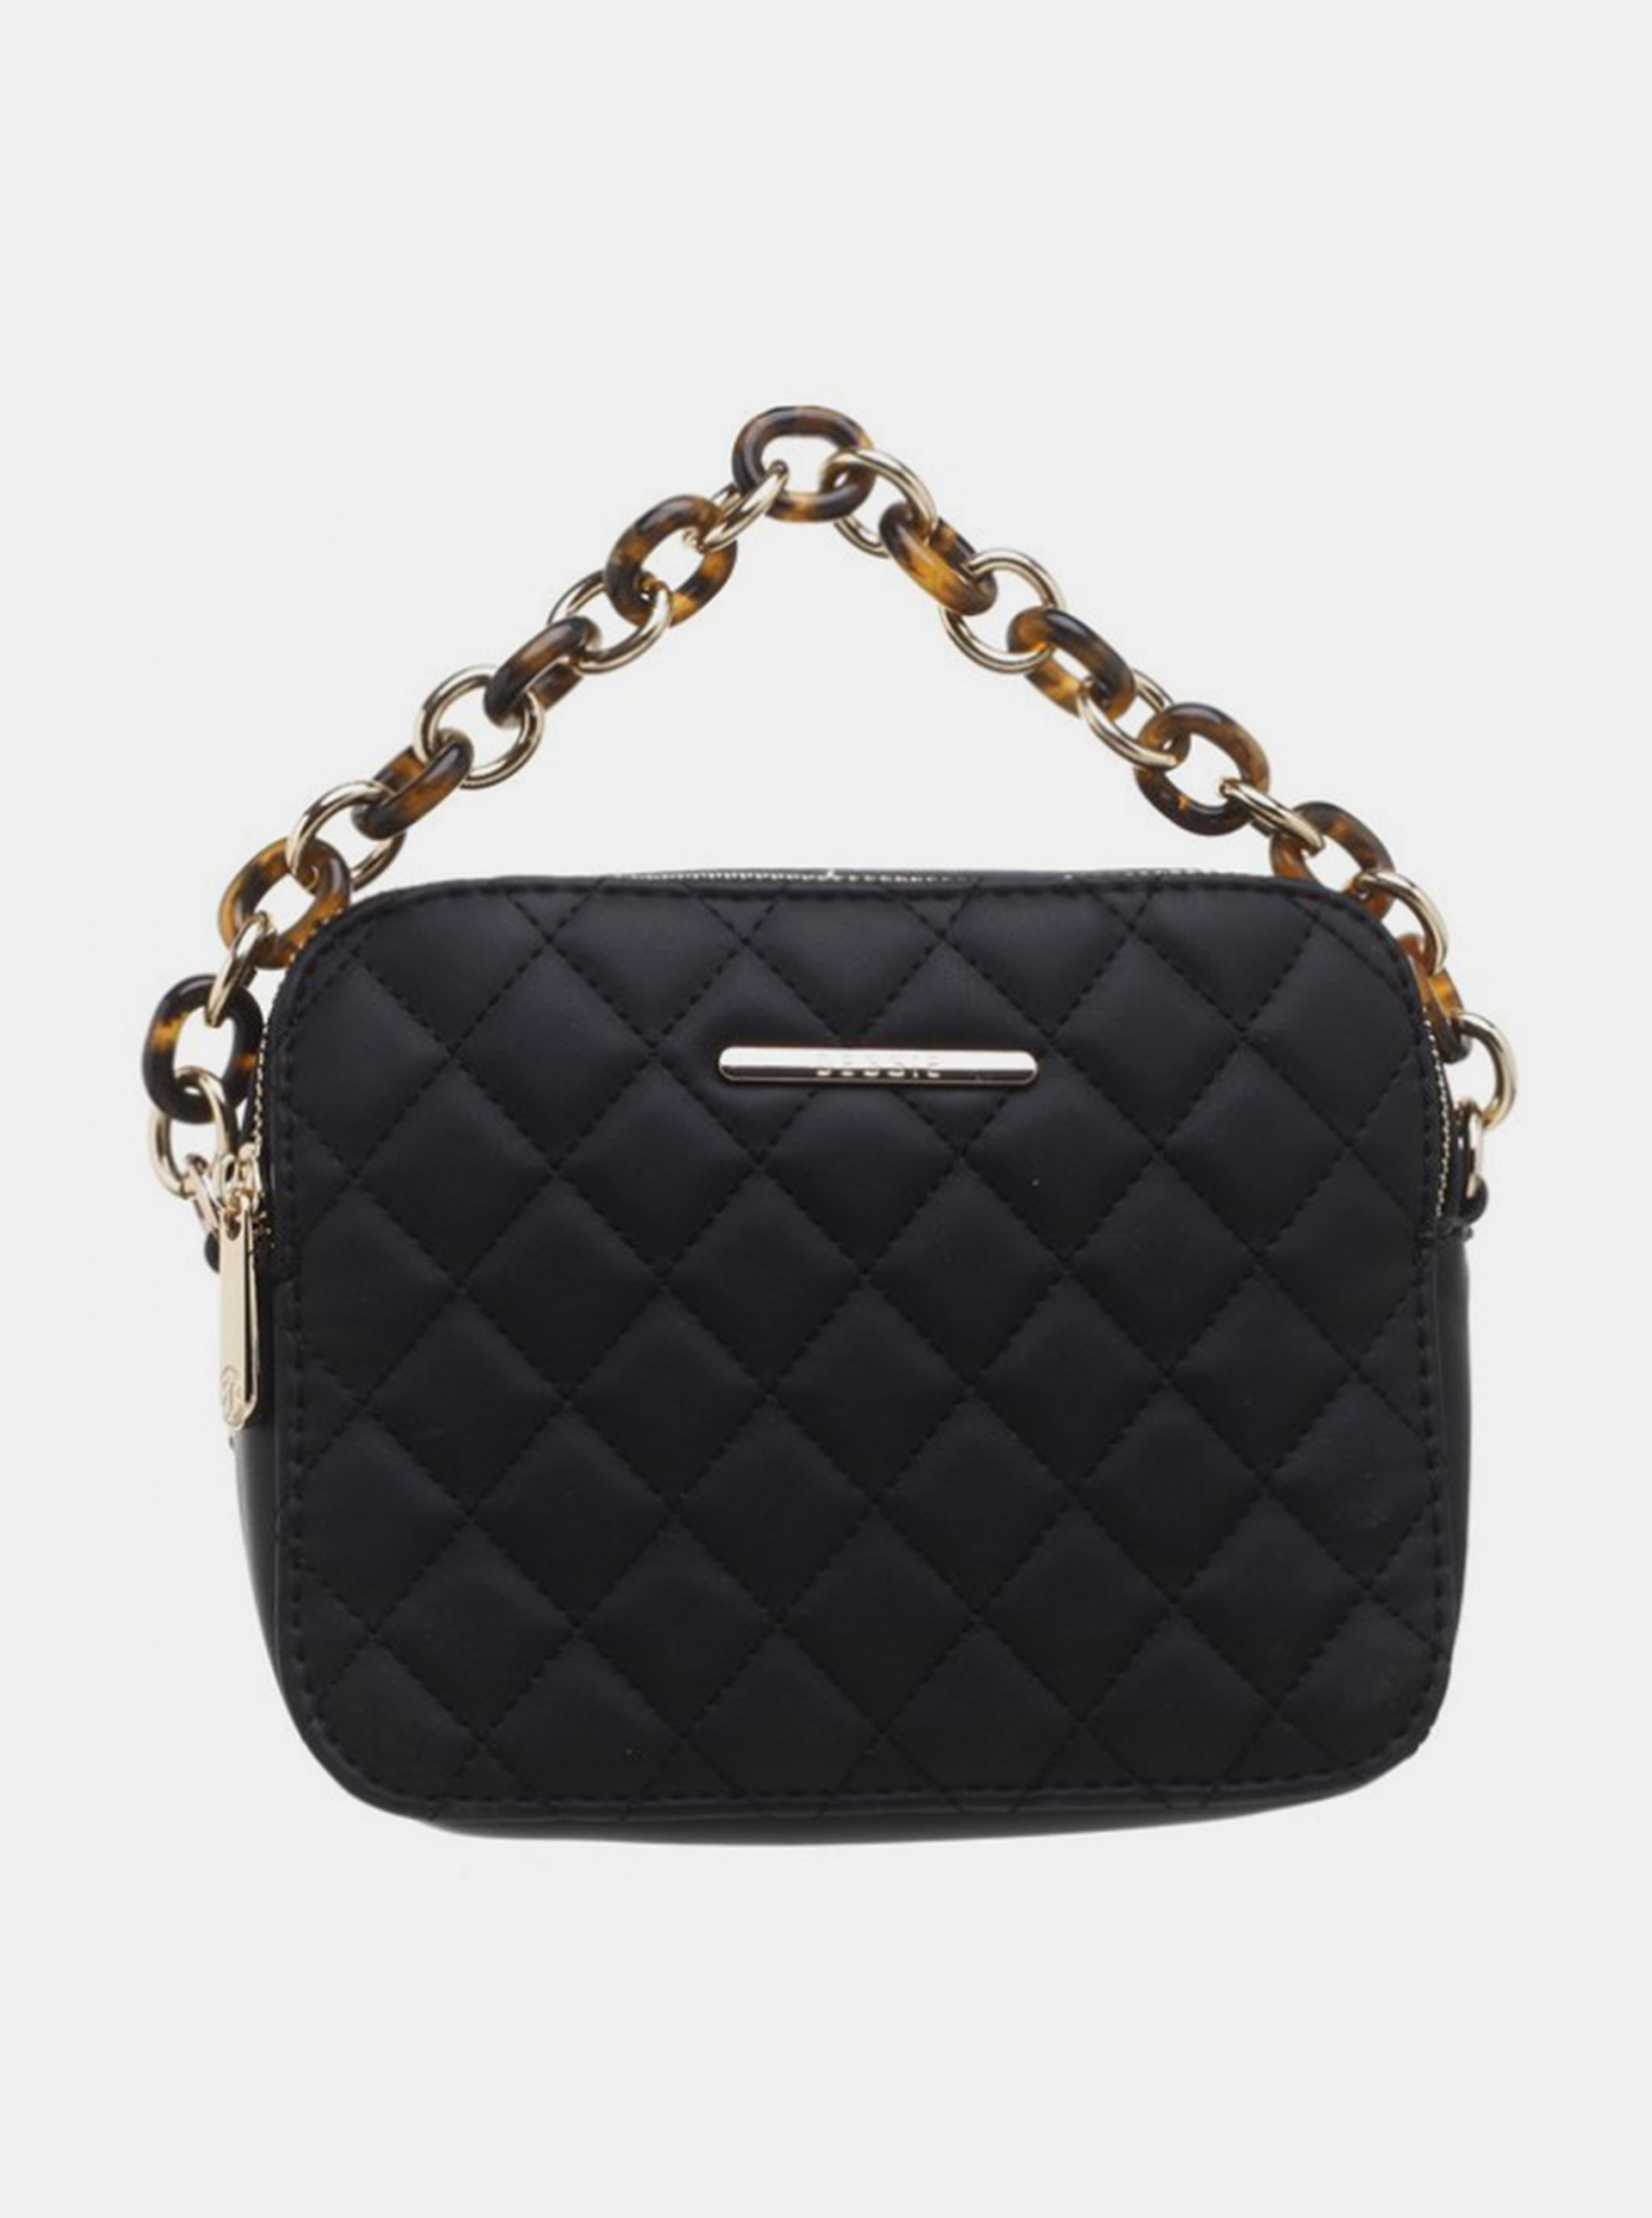 Borsa piccola nera Bessie London